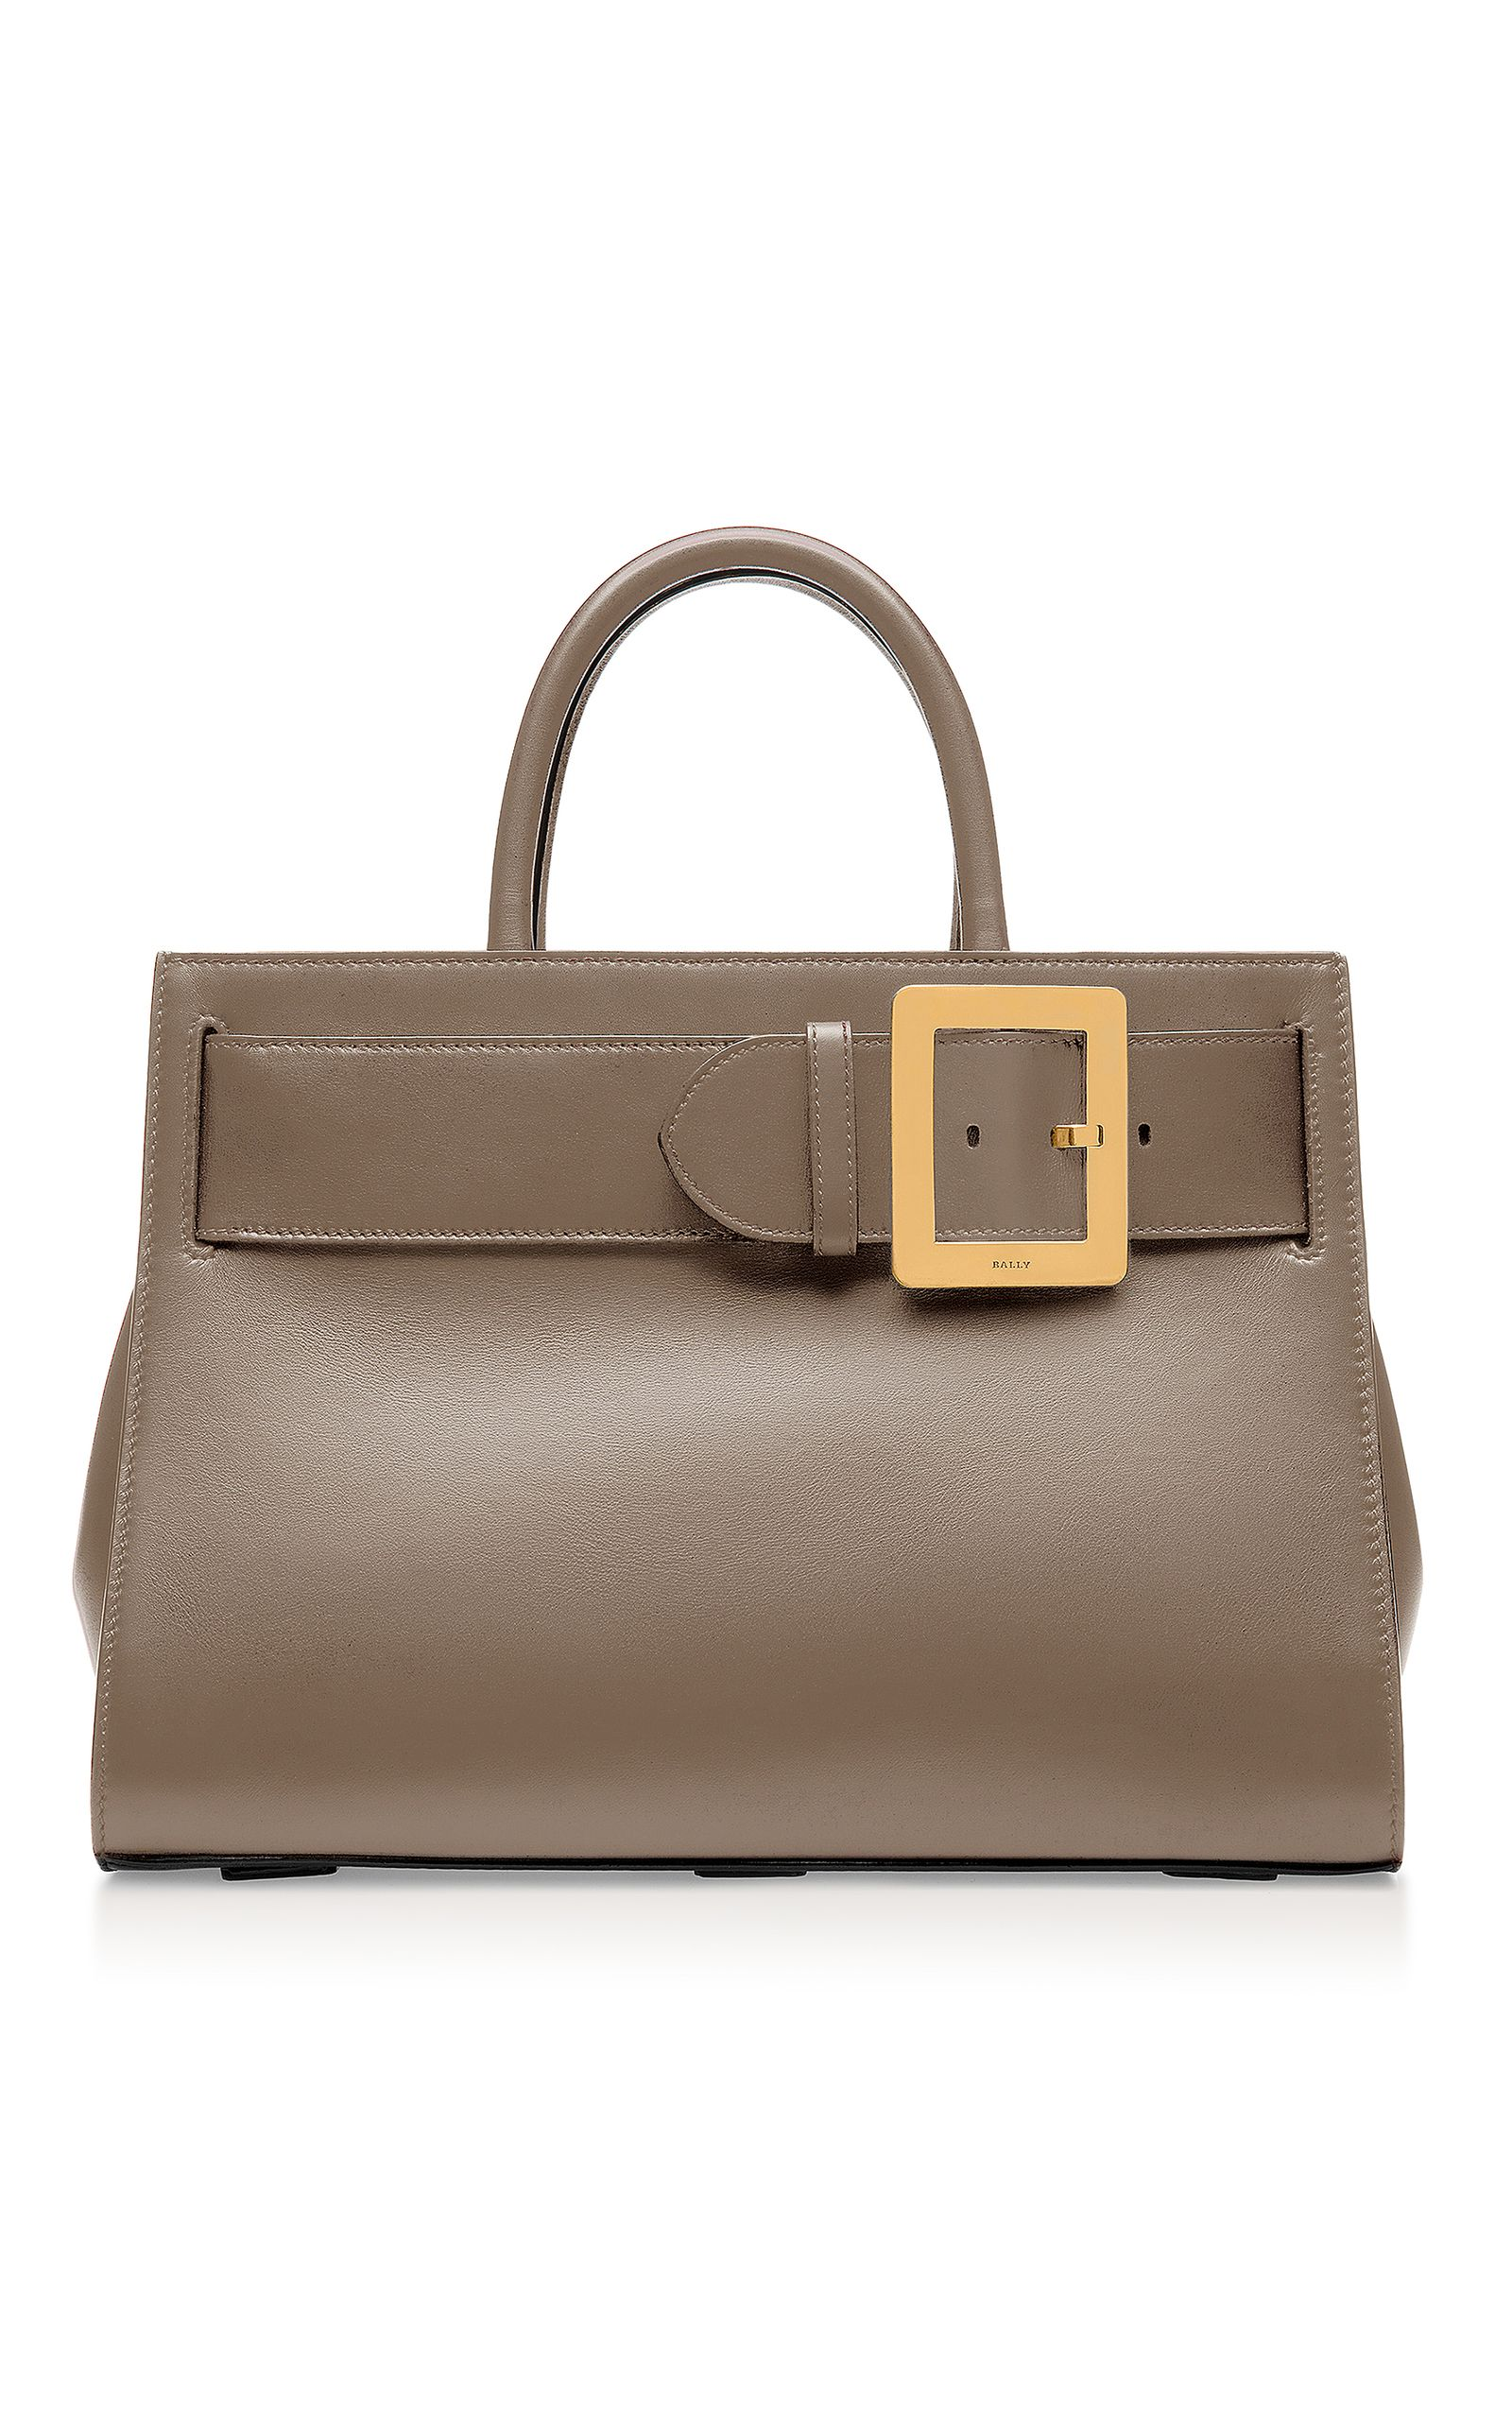 BALLY M O Exclusive  Belle Large Tote.  bally  bags  leather  hand bags   tote   139525e4dab